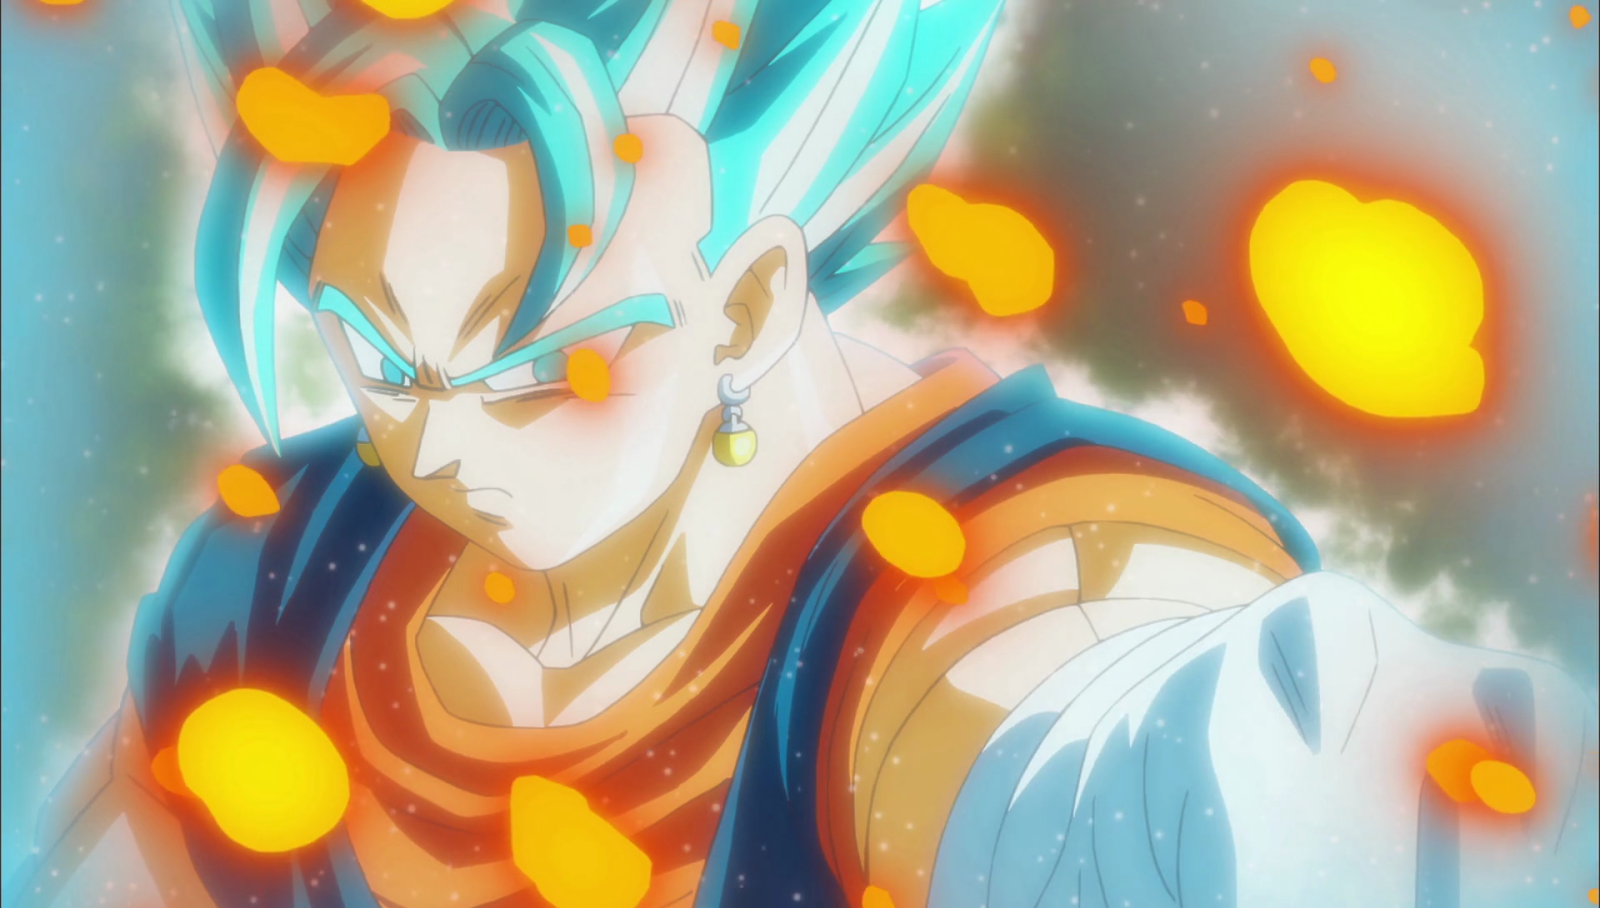 Image dragon ball super fonds d 39 cran hd for Super fond ecran